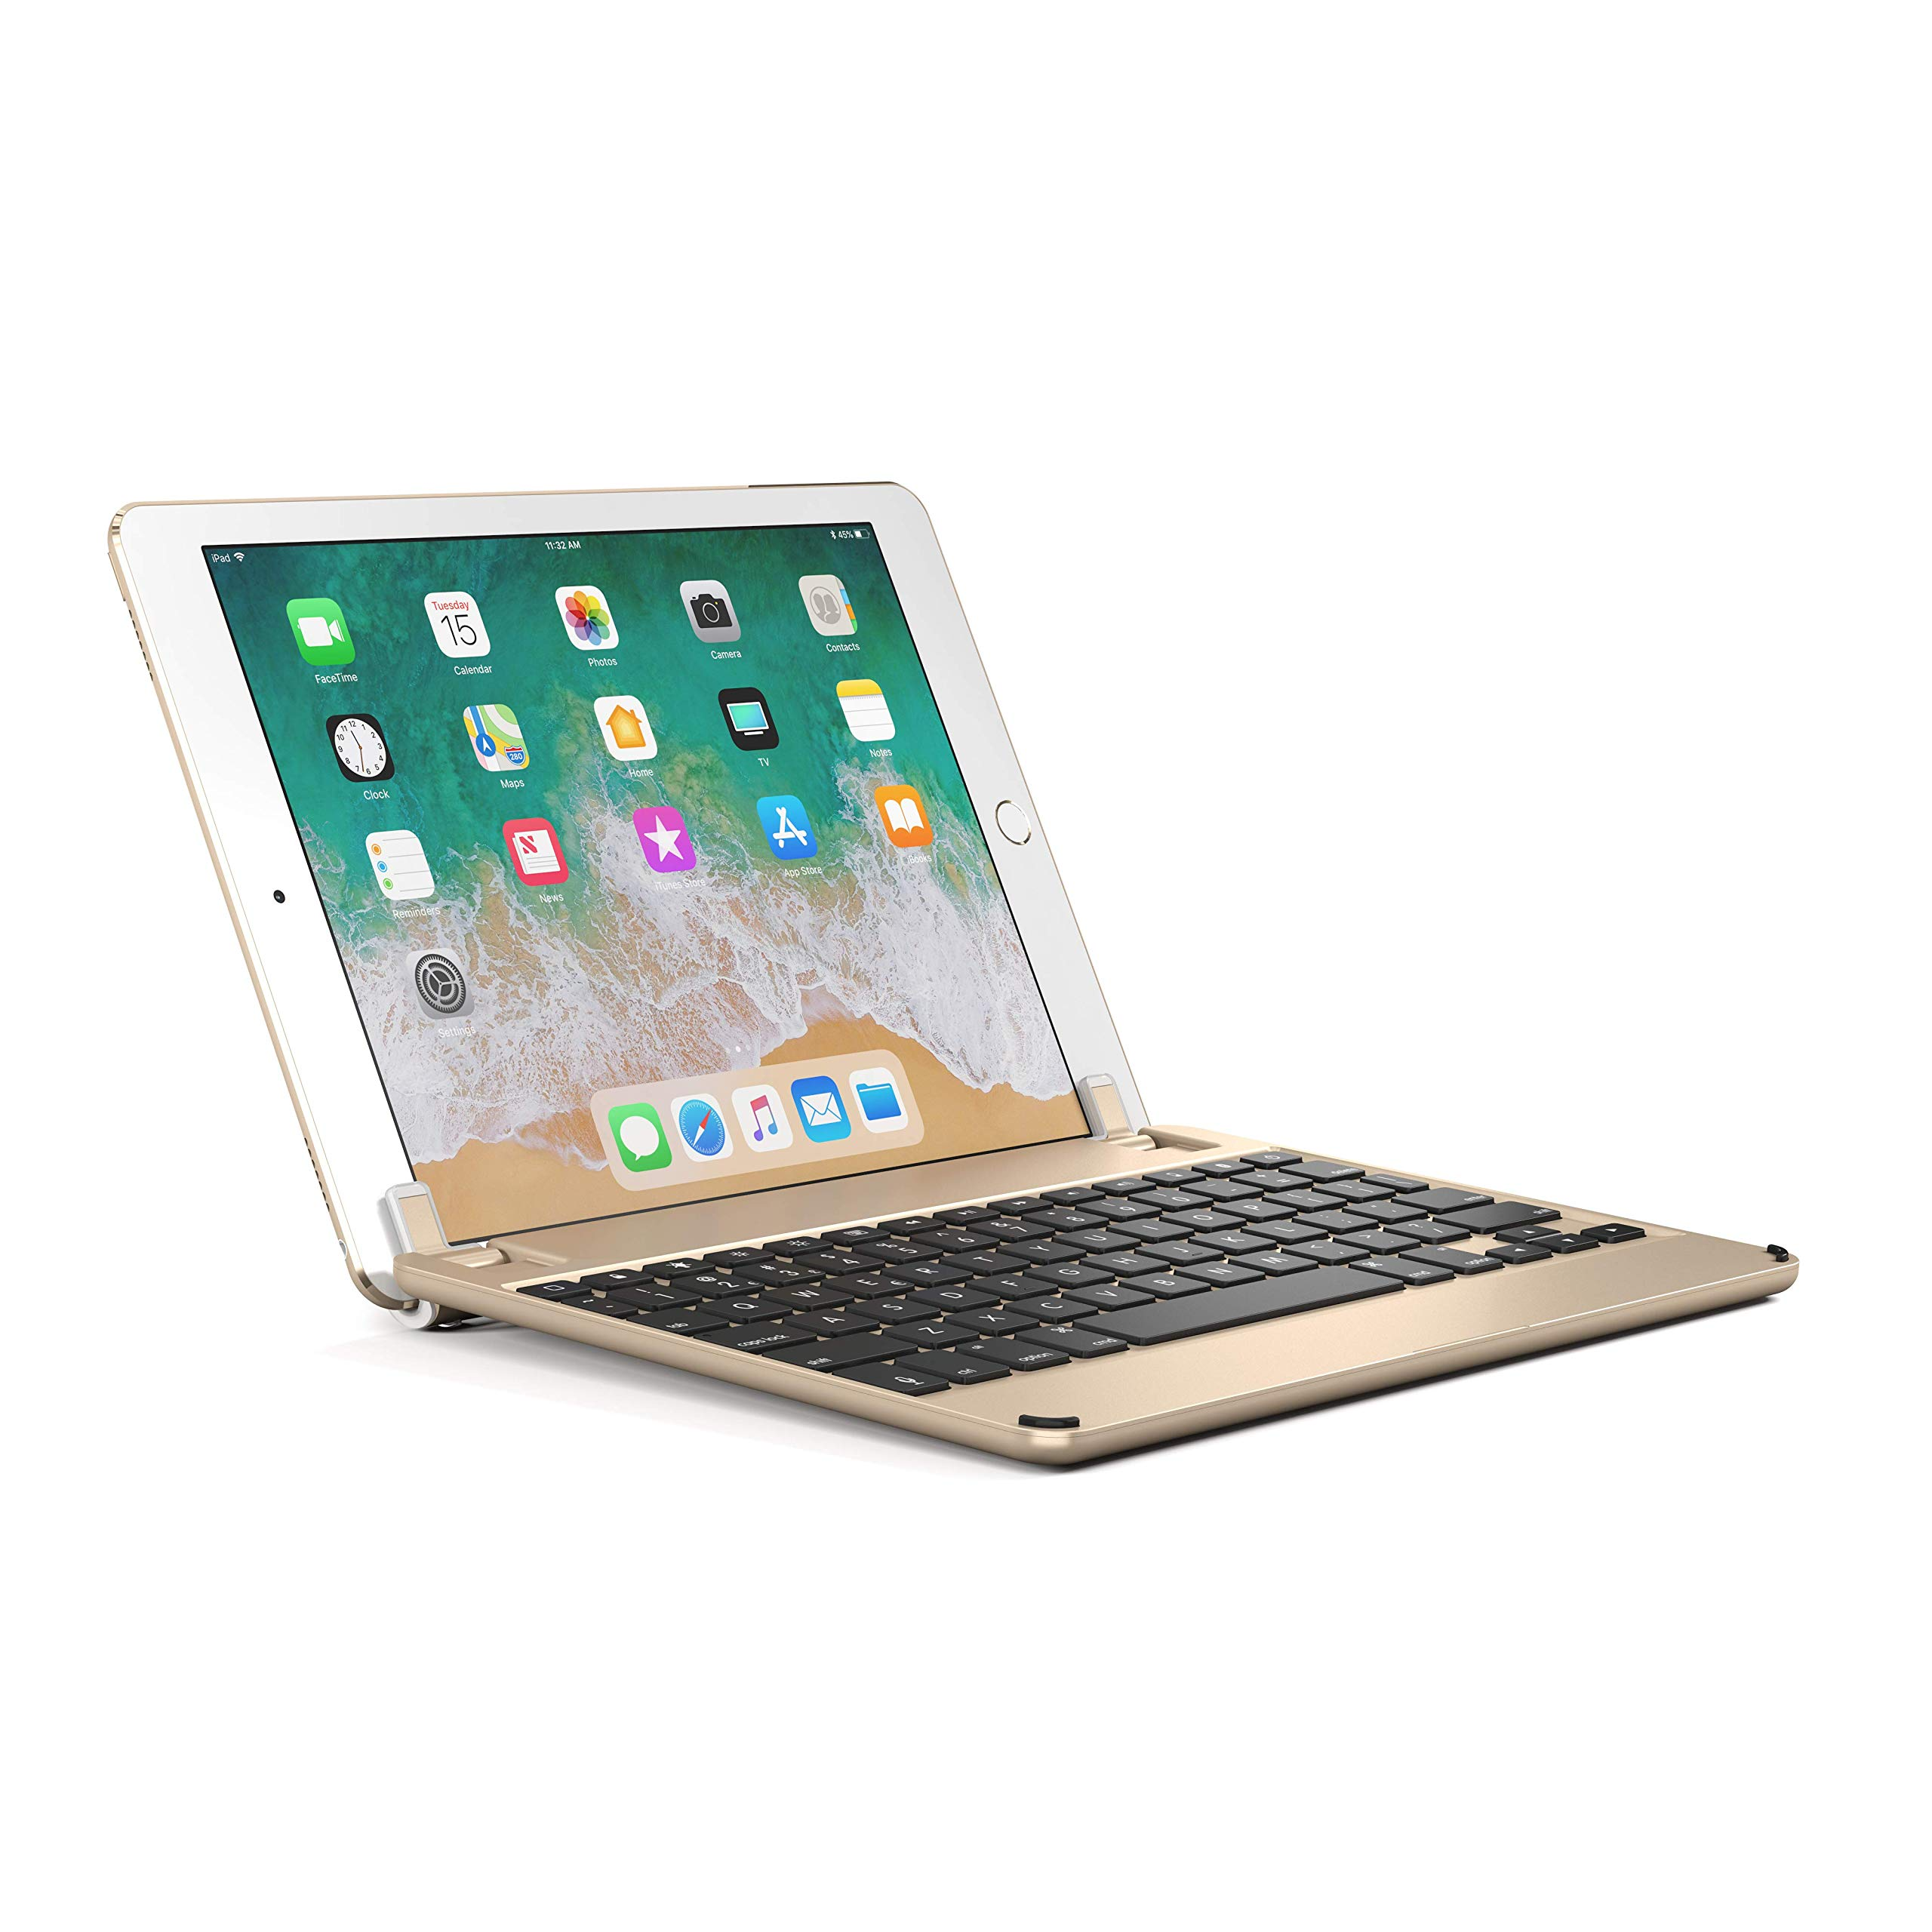 Brydge 9.7 iPad Keyboard, Aluminum Bluetooth Keyboard 9.7 inch iPad (6th Gen), 5th Gen iPad (2017), iPad Pro 9.7 inch, Air 1 2 (Gold) by Brydge